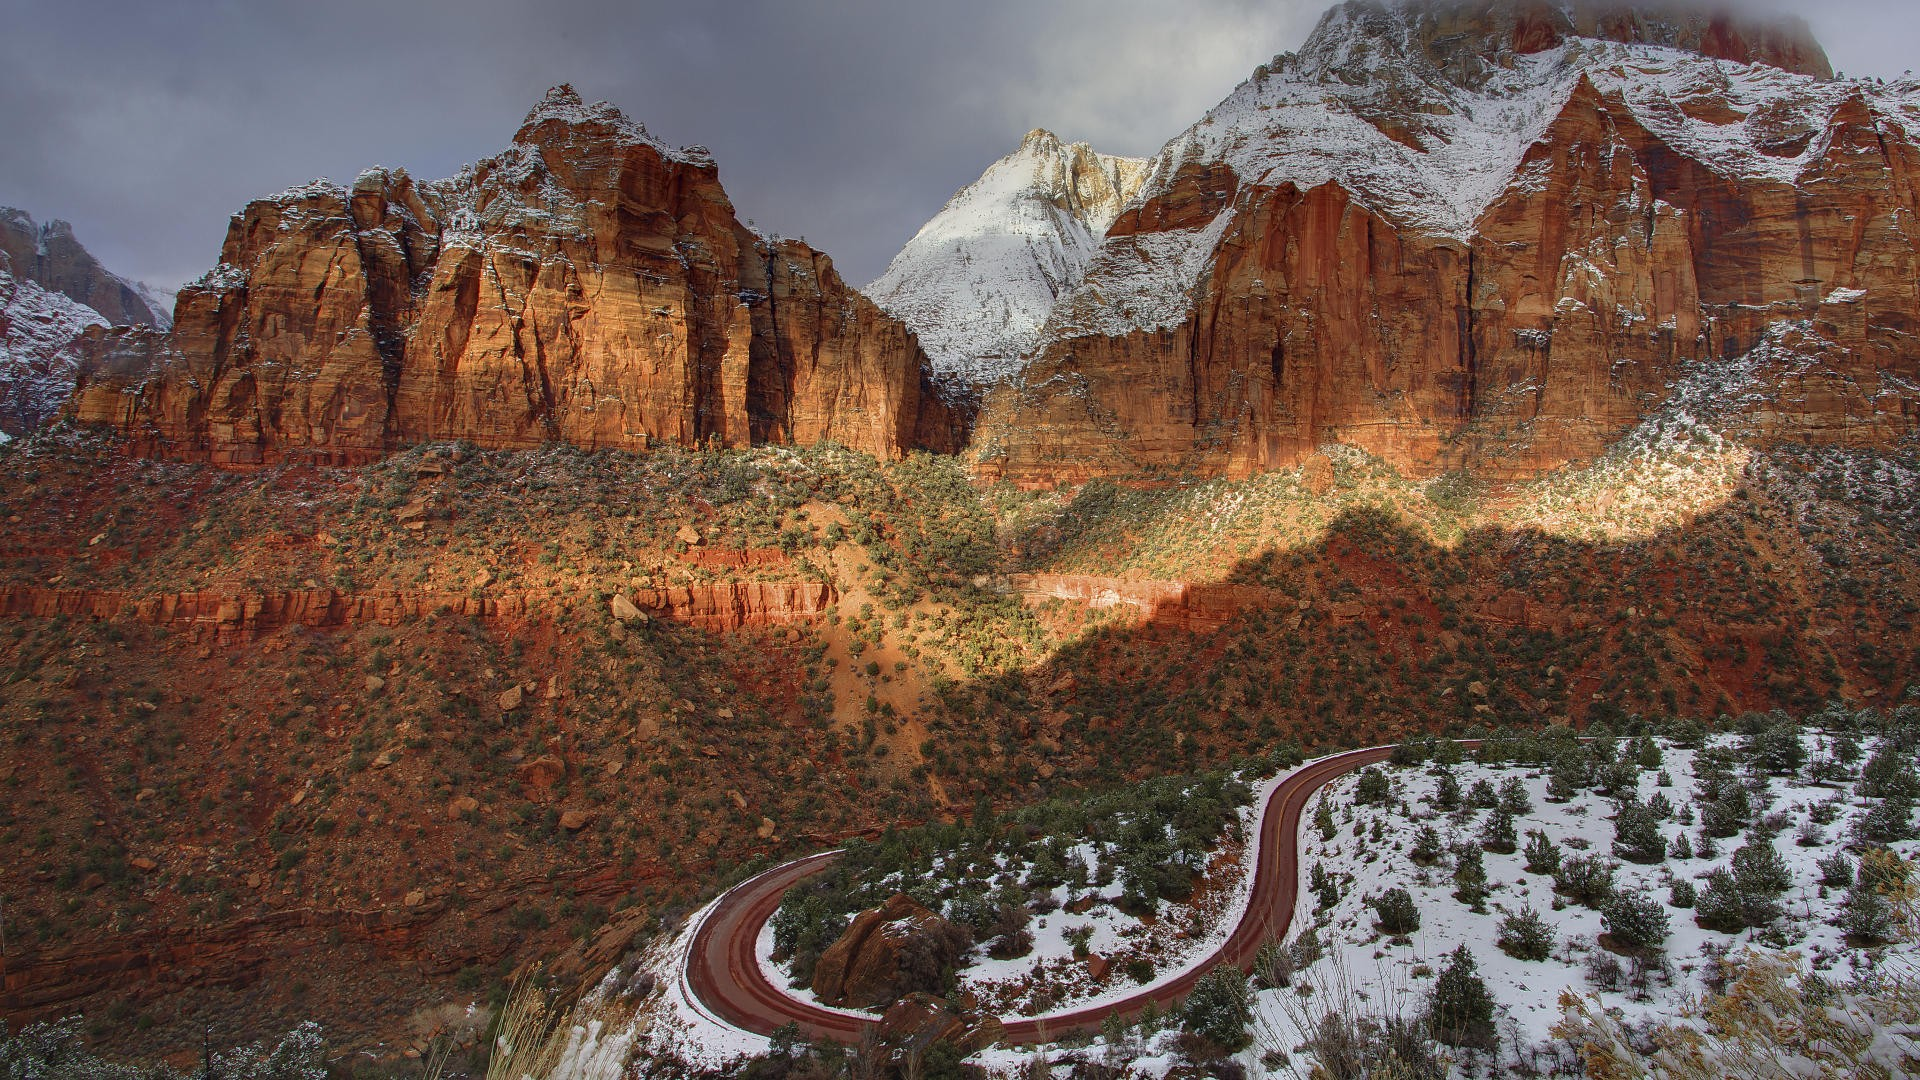 3d Live Wallpaper Hd 1080p Free Download Zion National Park Wallpapers Hd Pixelstalk Net